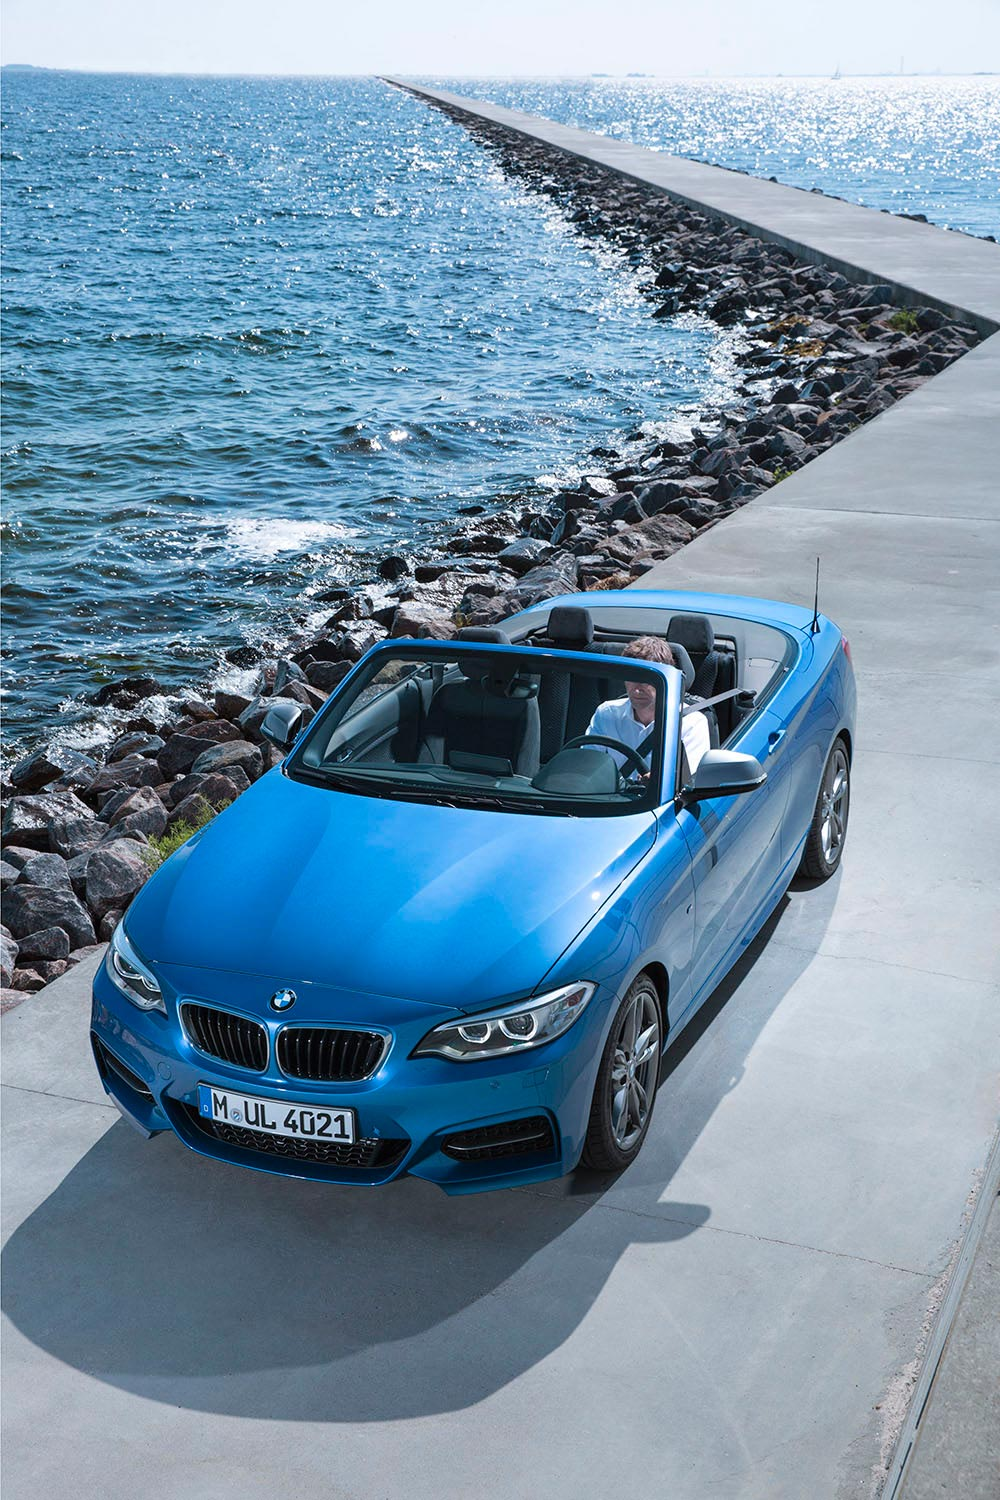 The new BMW 2 Series Convertible M235i 7